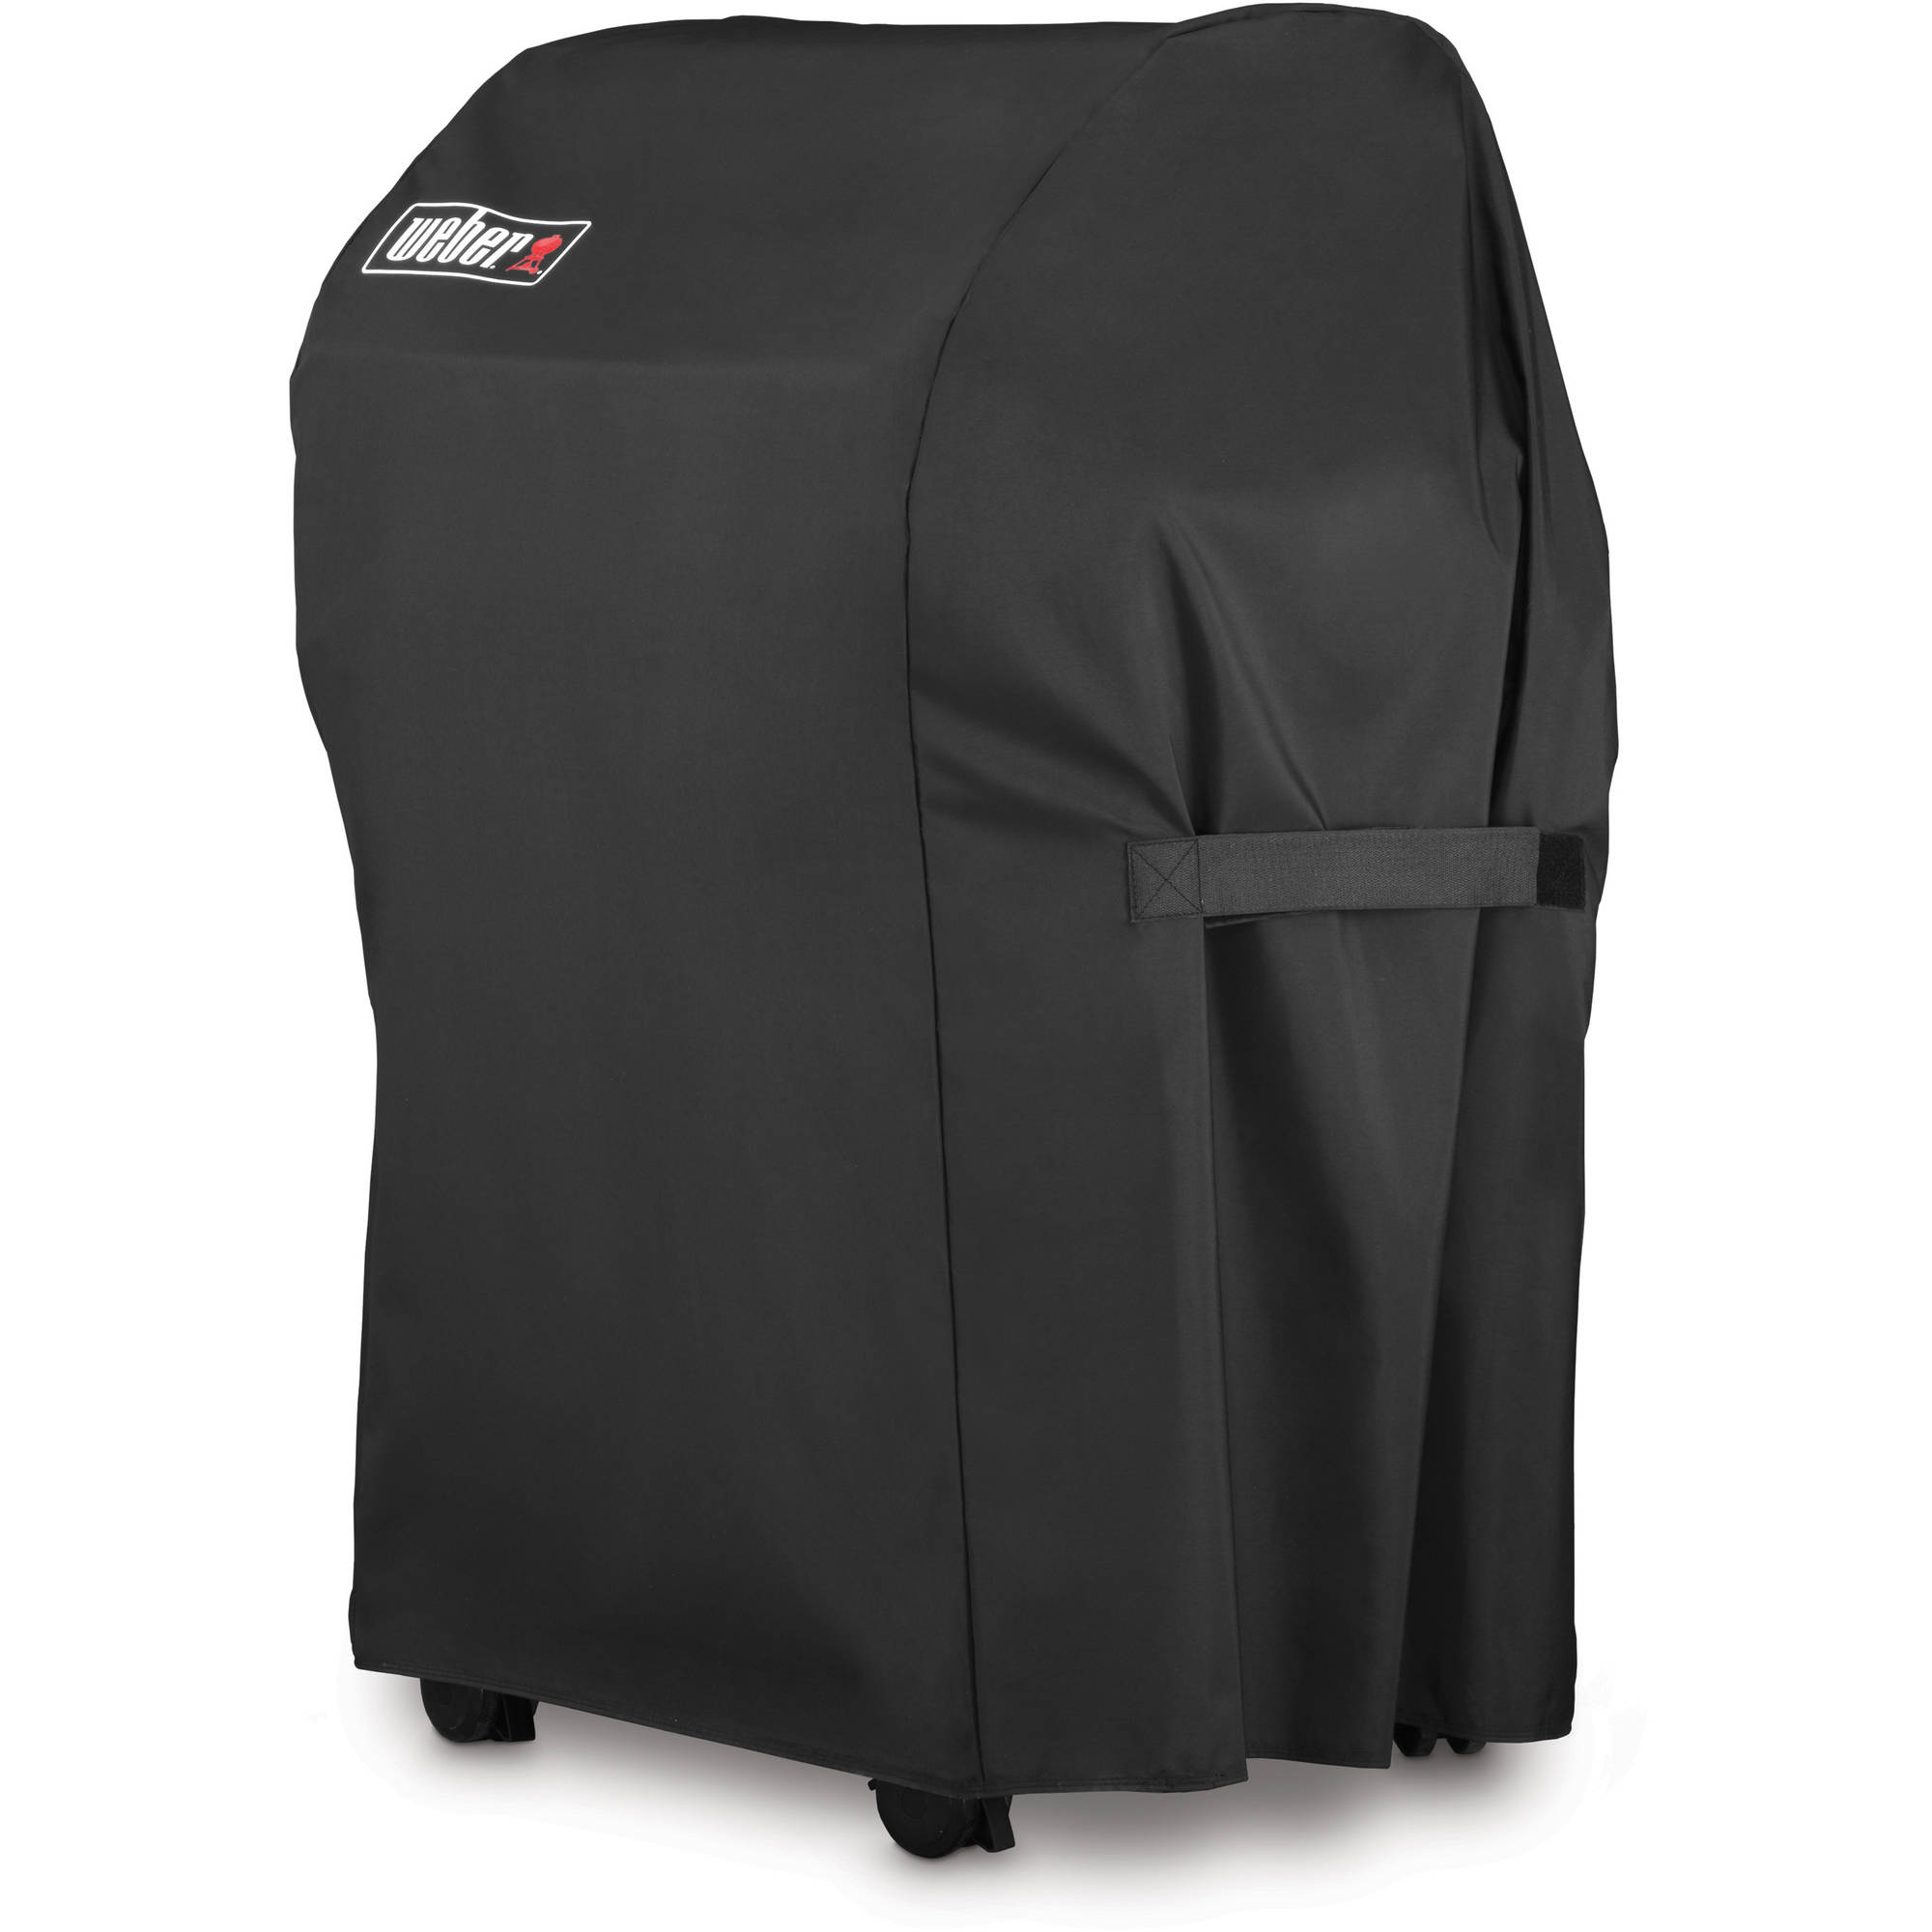 Weber Spirit 210 Grill Cover with Storage Bag by Grill Covers